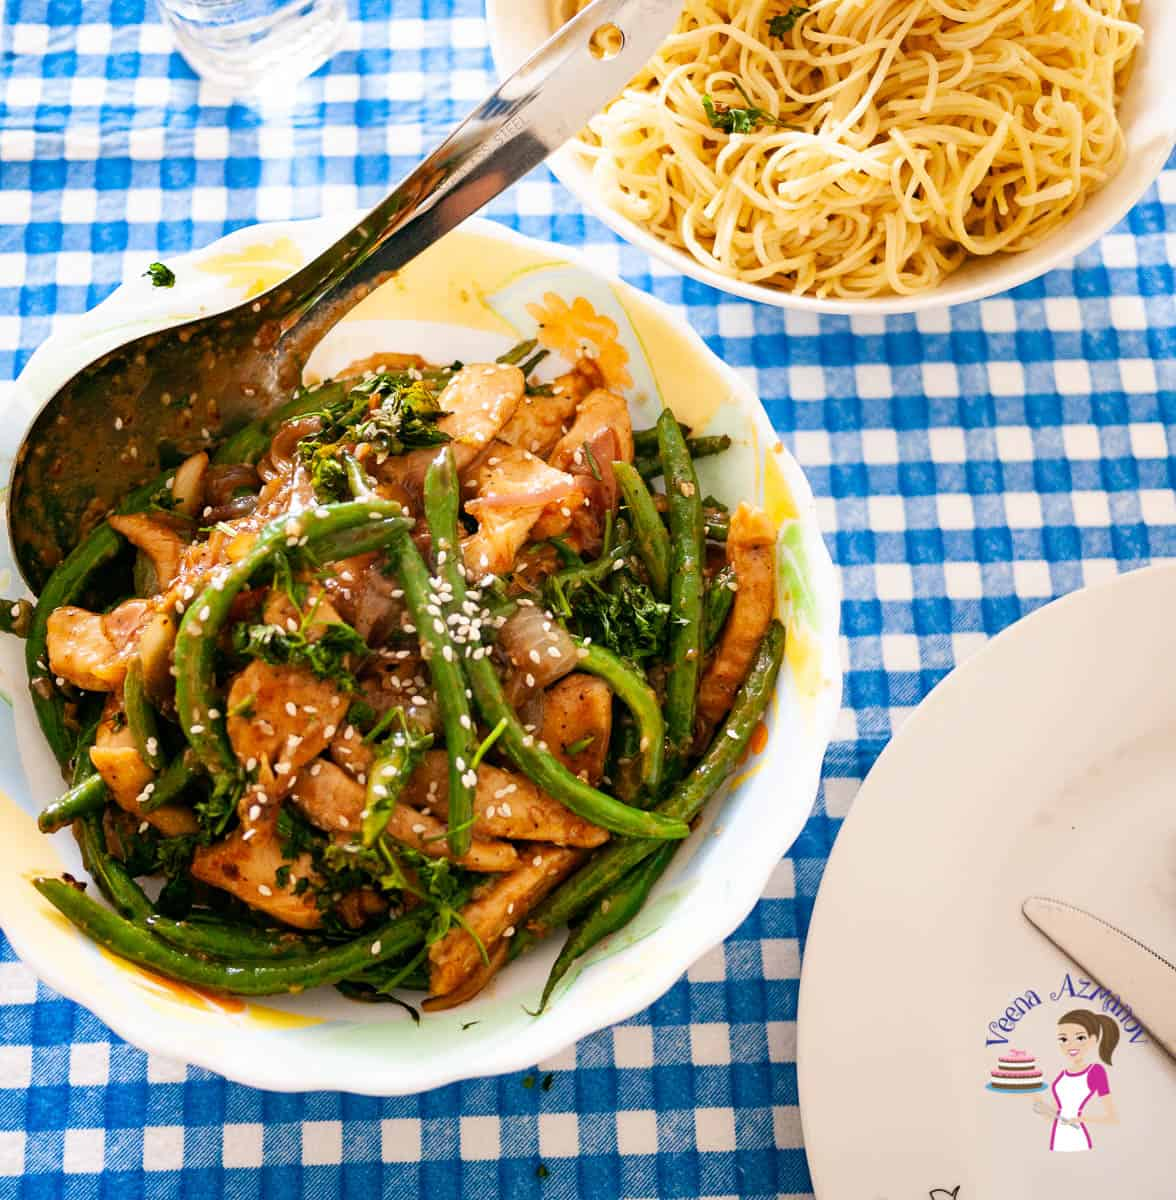 A bowl with chicken stir fry